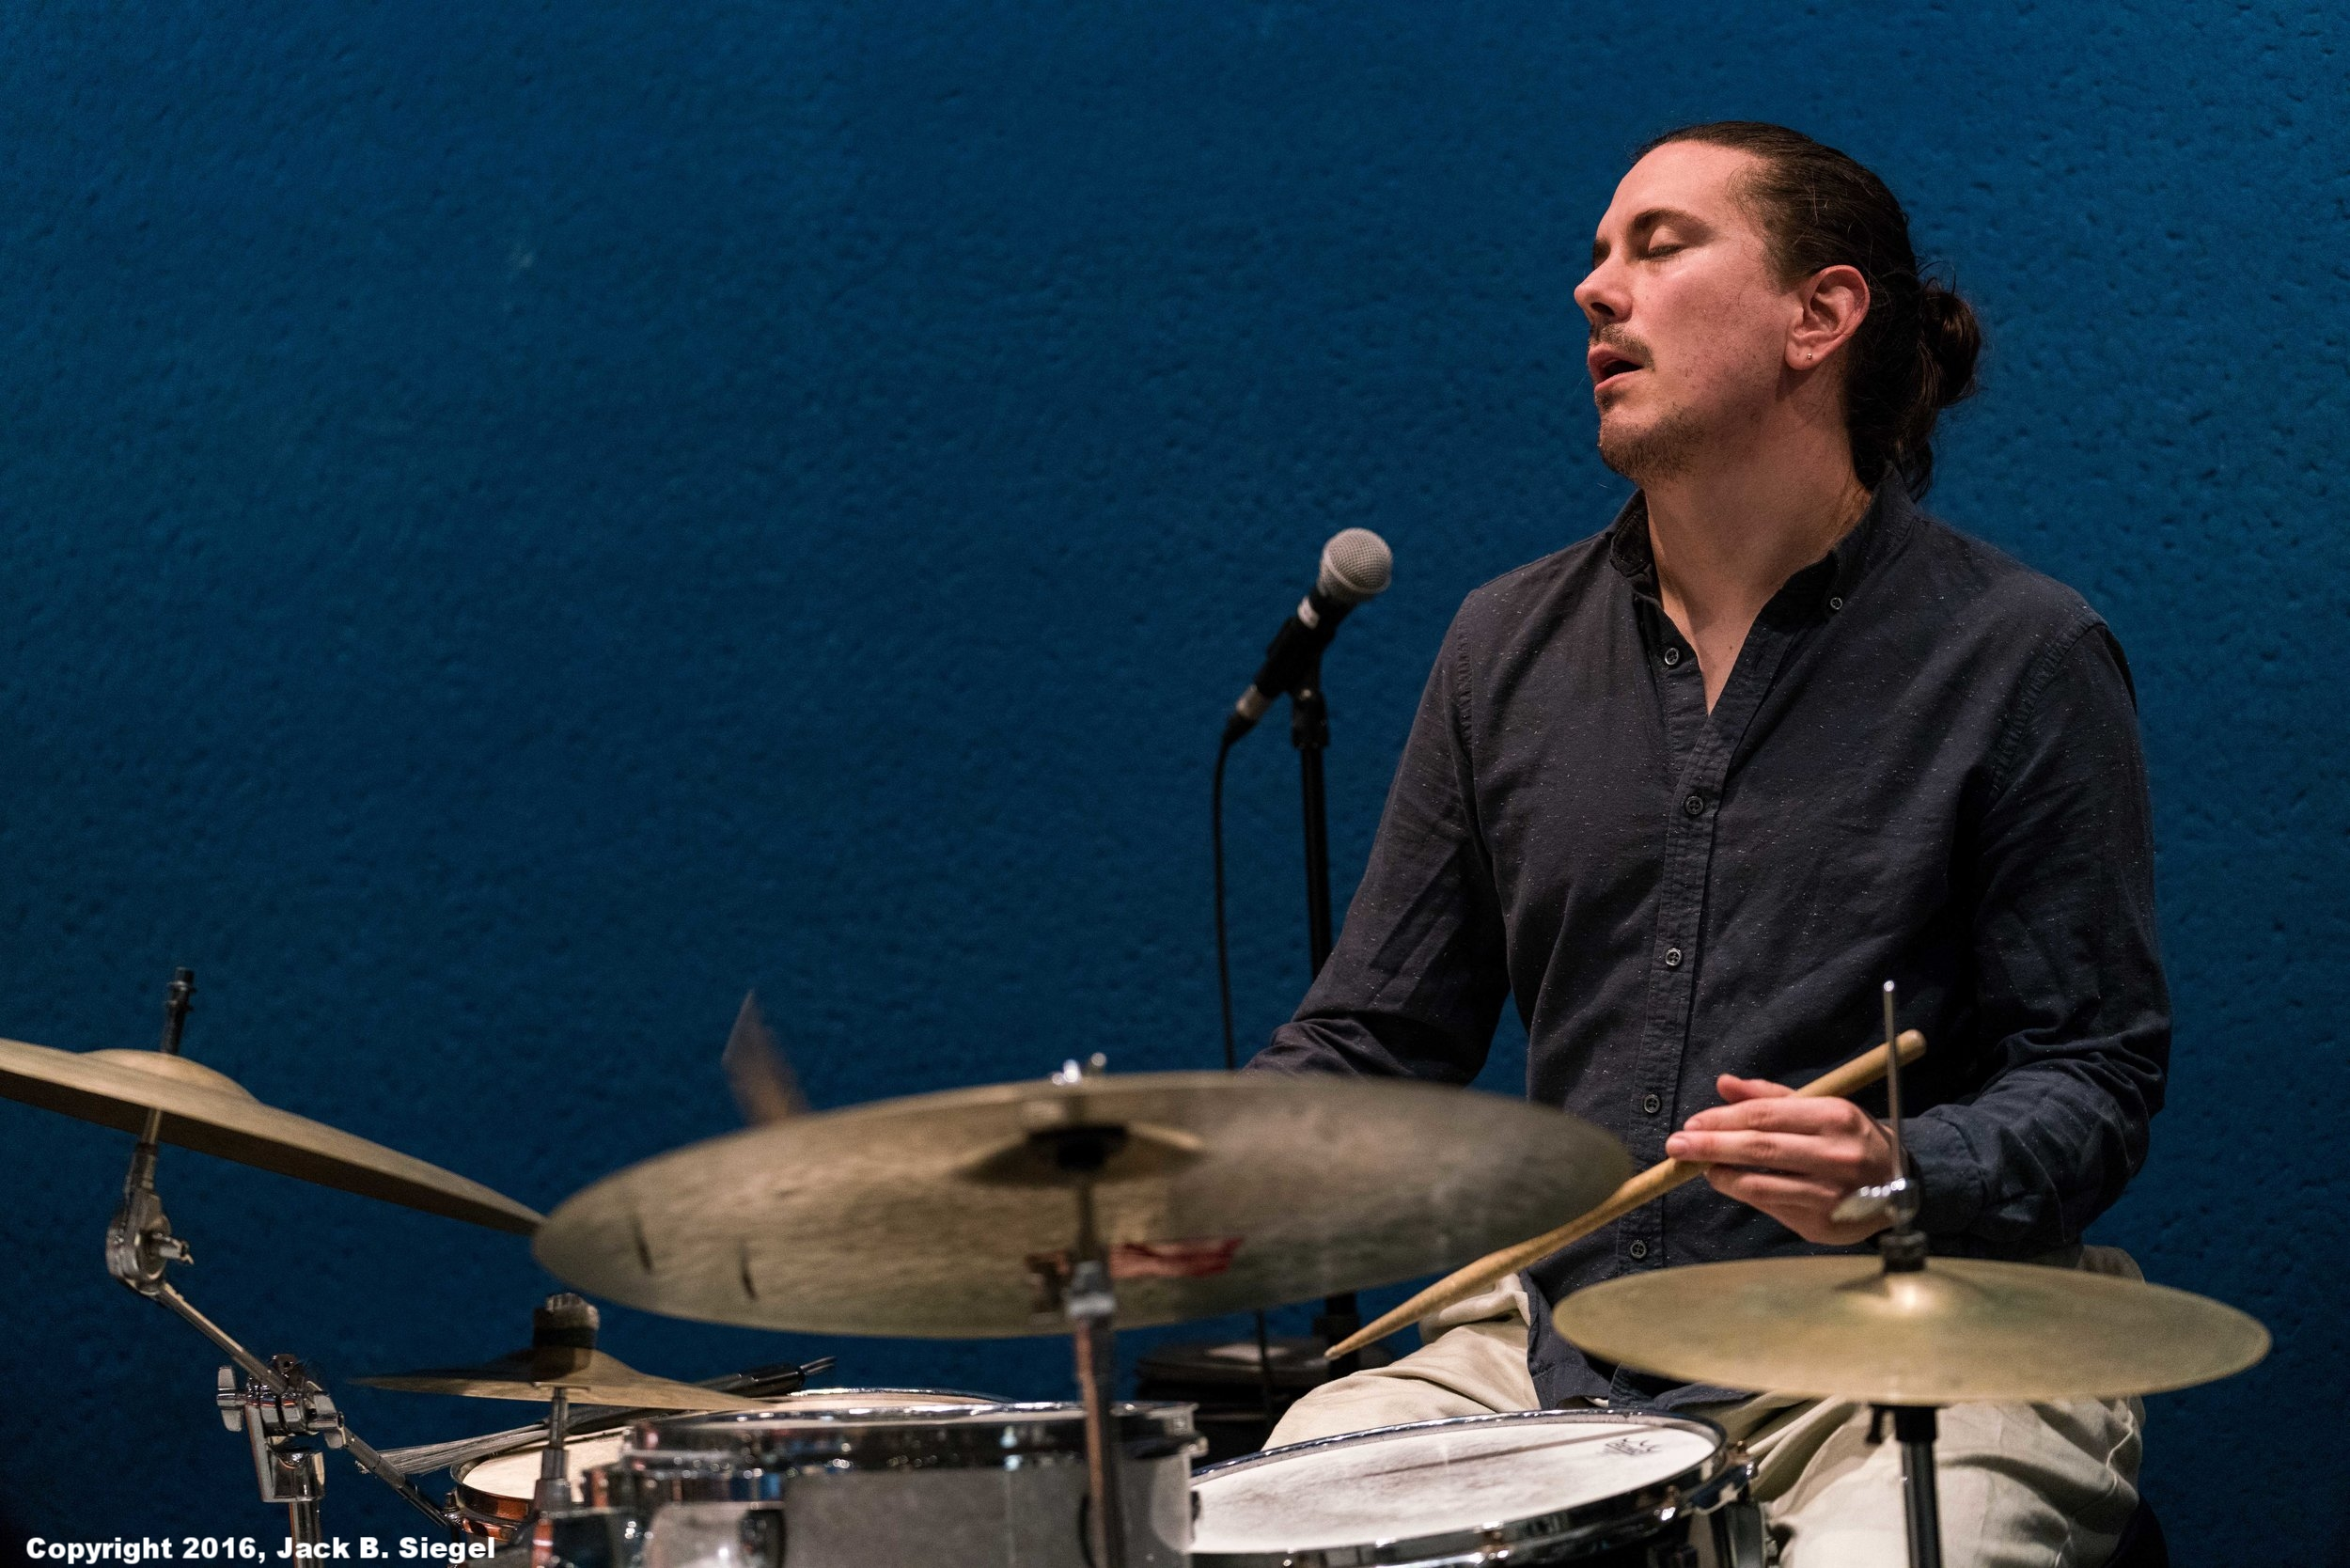 Gustavo Cortinas on Drums